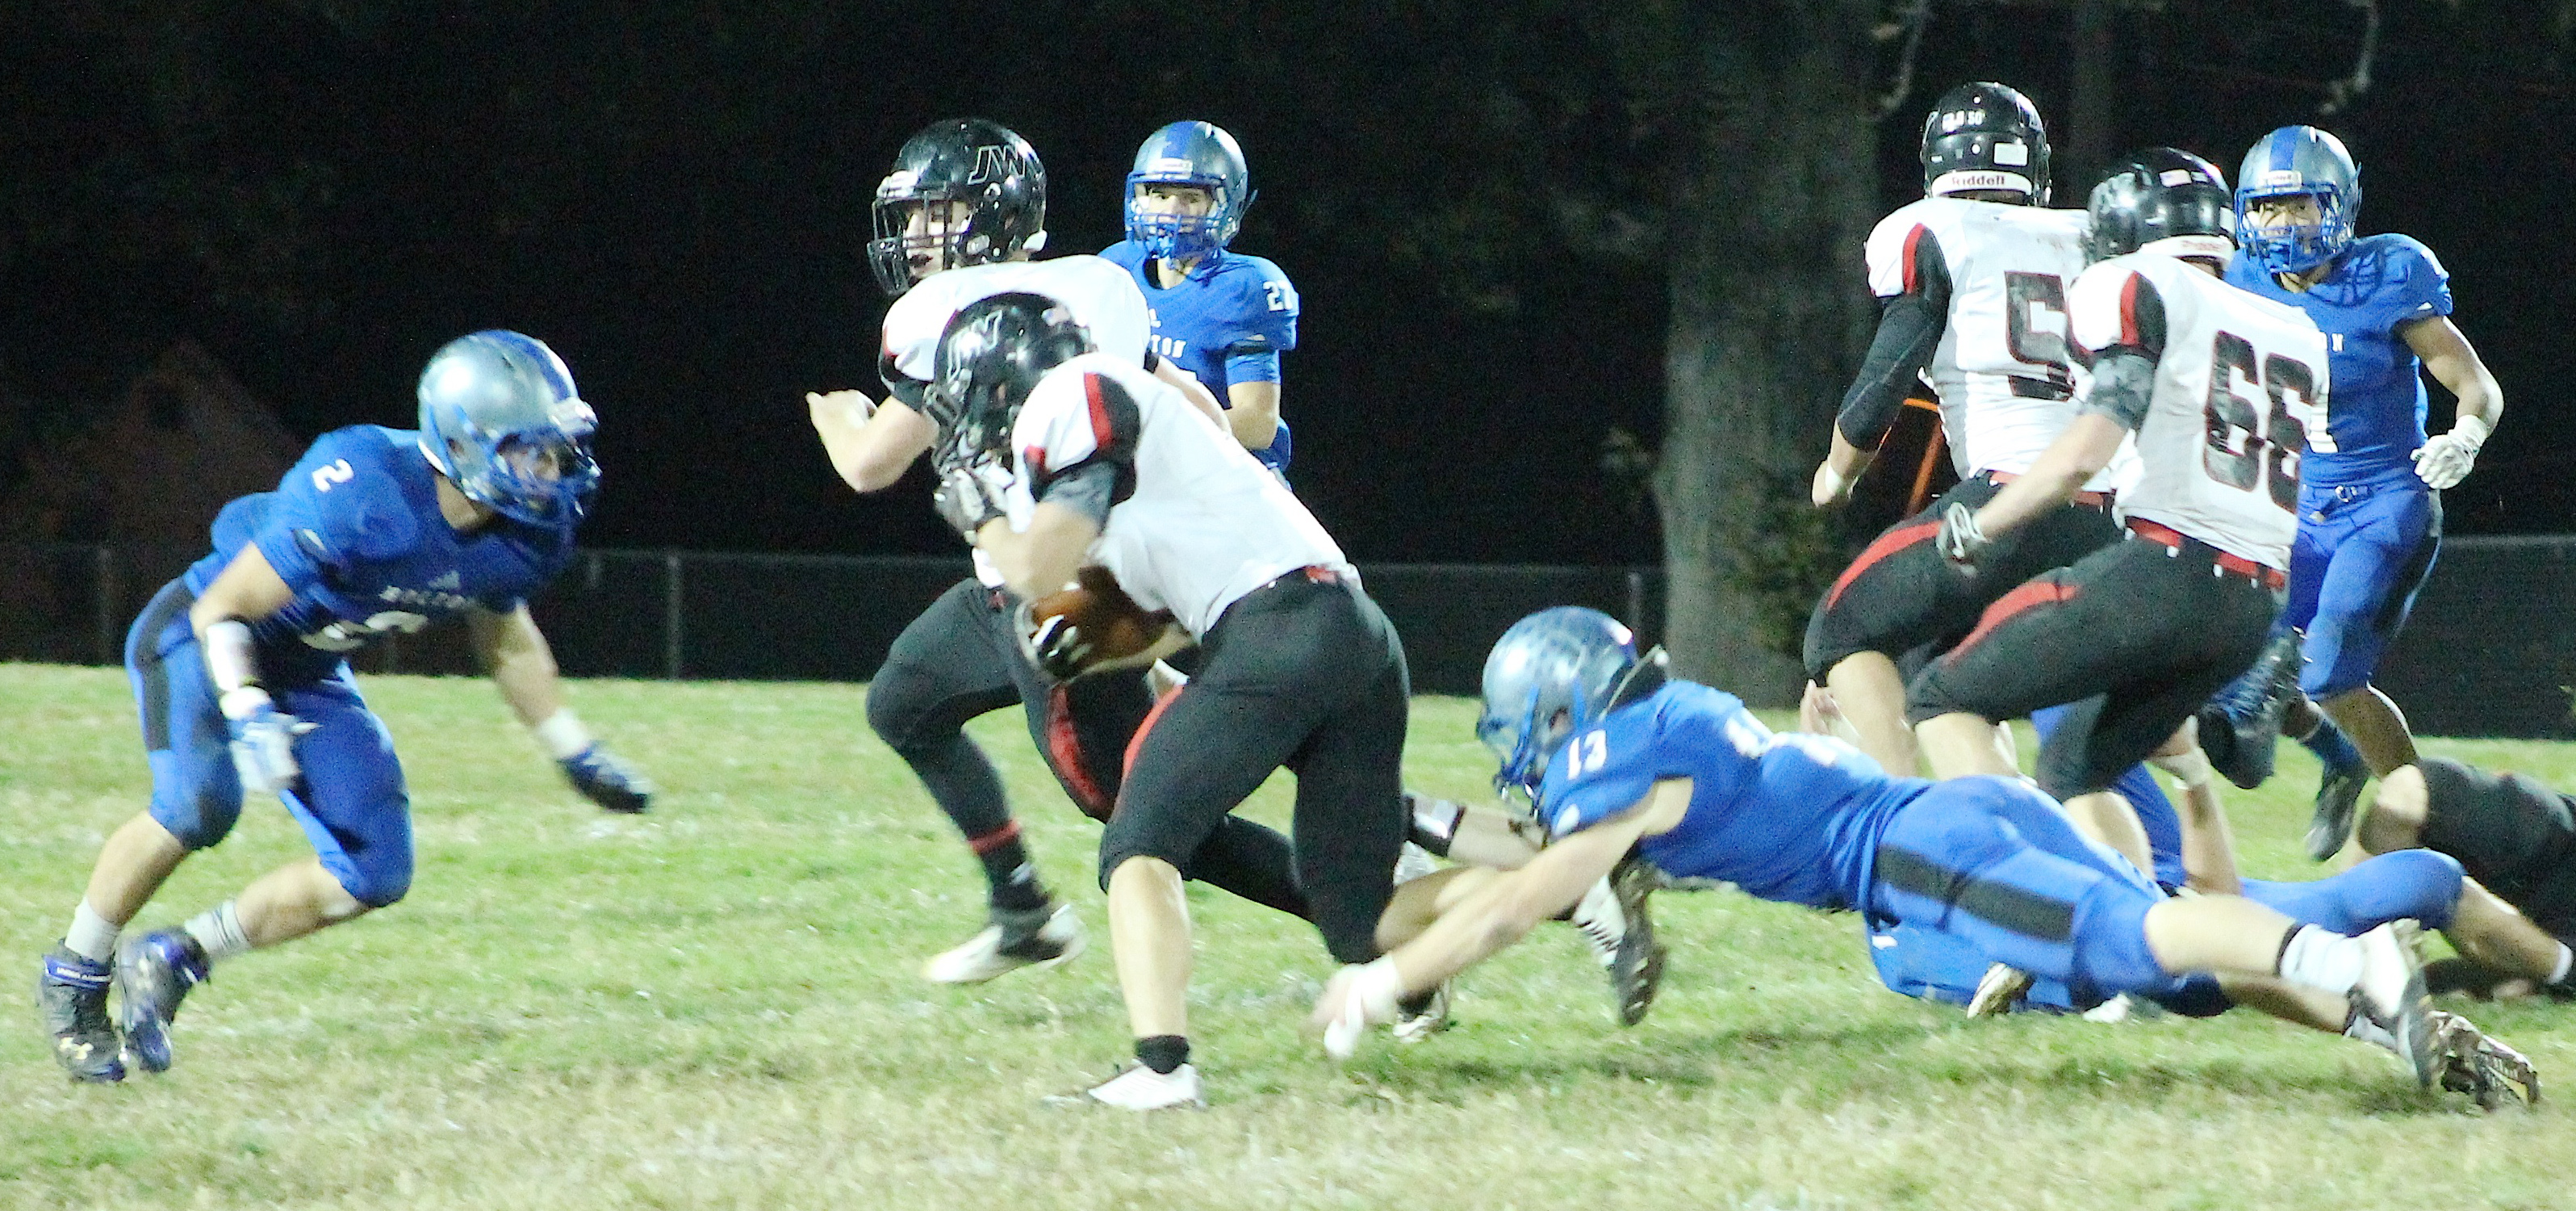 Linebacker Jordan Booth (right) makes a shoestring tackle.